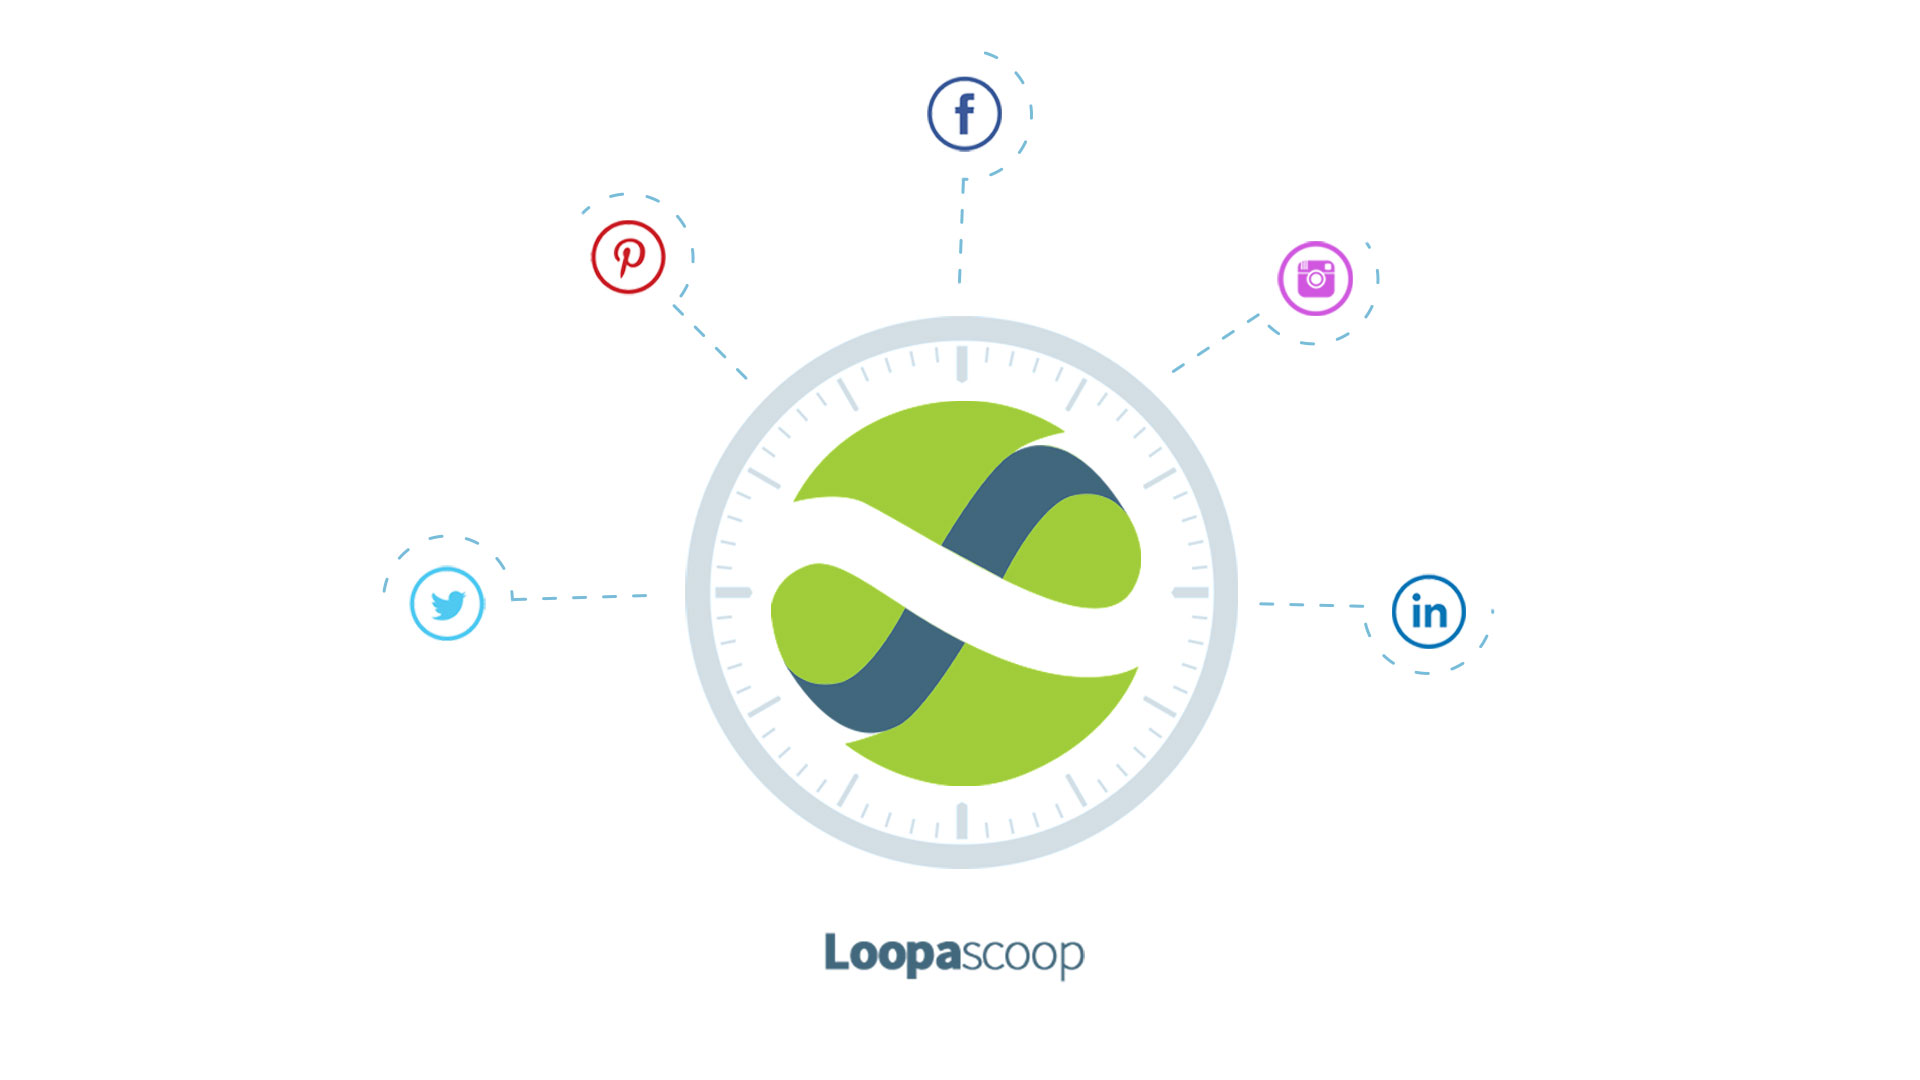 Loopascoop is a time-saving content marketing platform.Create, Post, Schedule & Analyse all within one centralised intelligent workspace. Easily create and schedule all your content ahead of time.